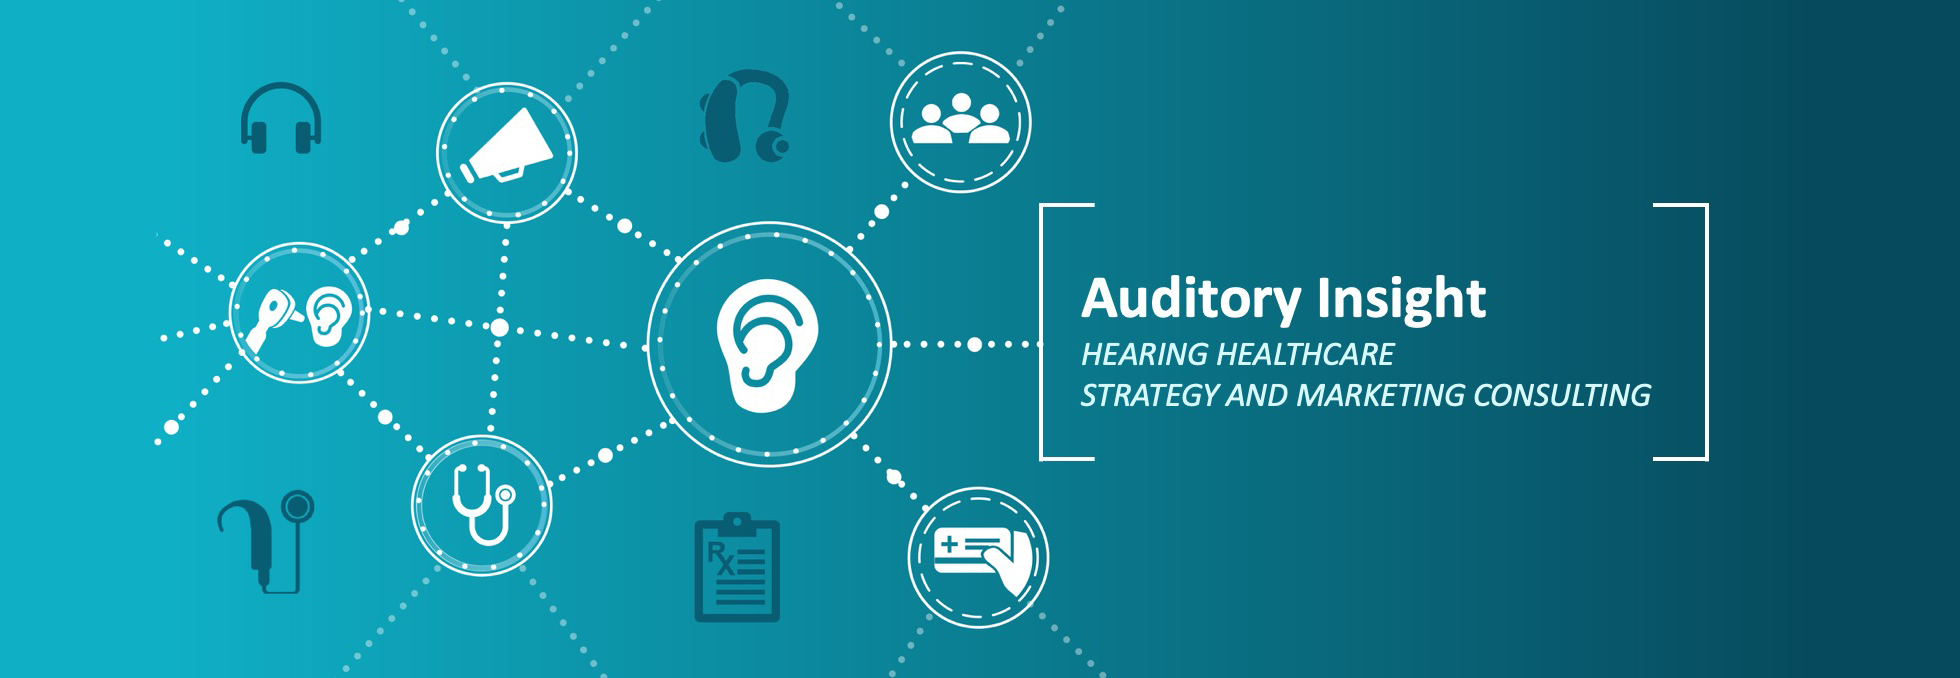 Auditory Insight Hearing Healthcare Consullting